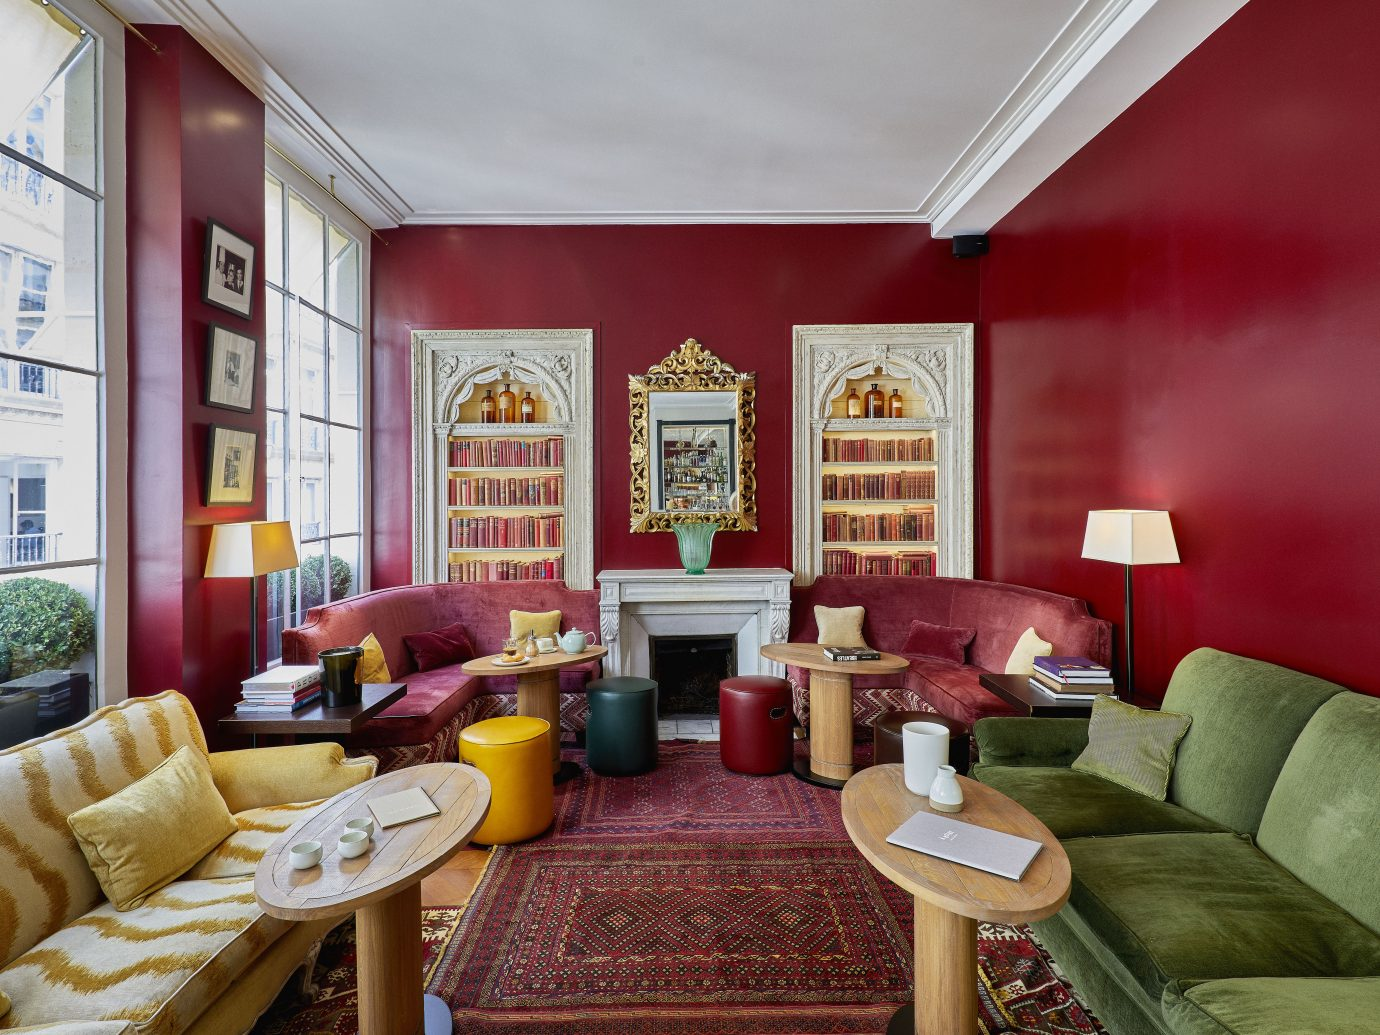 interior sitting space with red walls and carpet but with numerous colorful couches